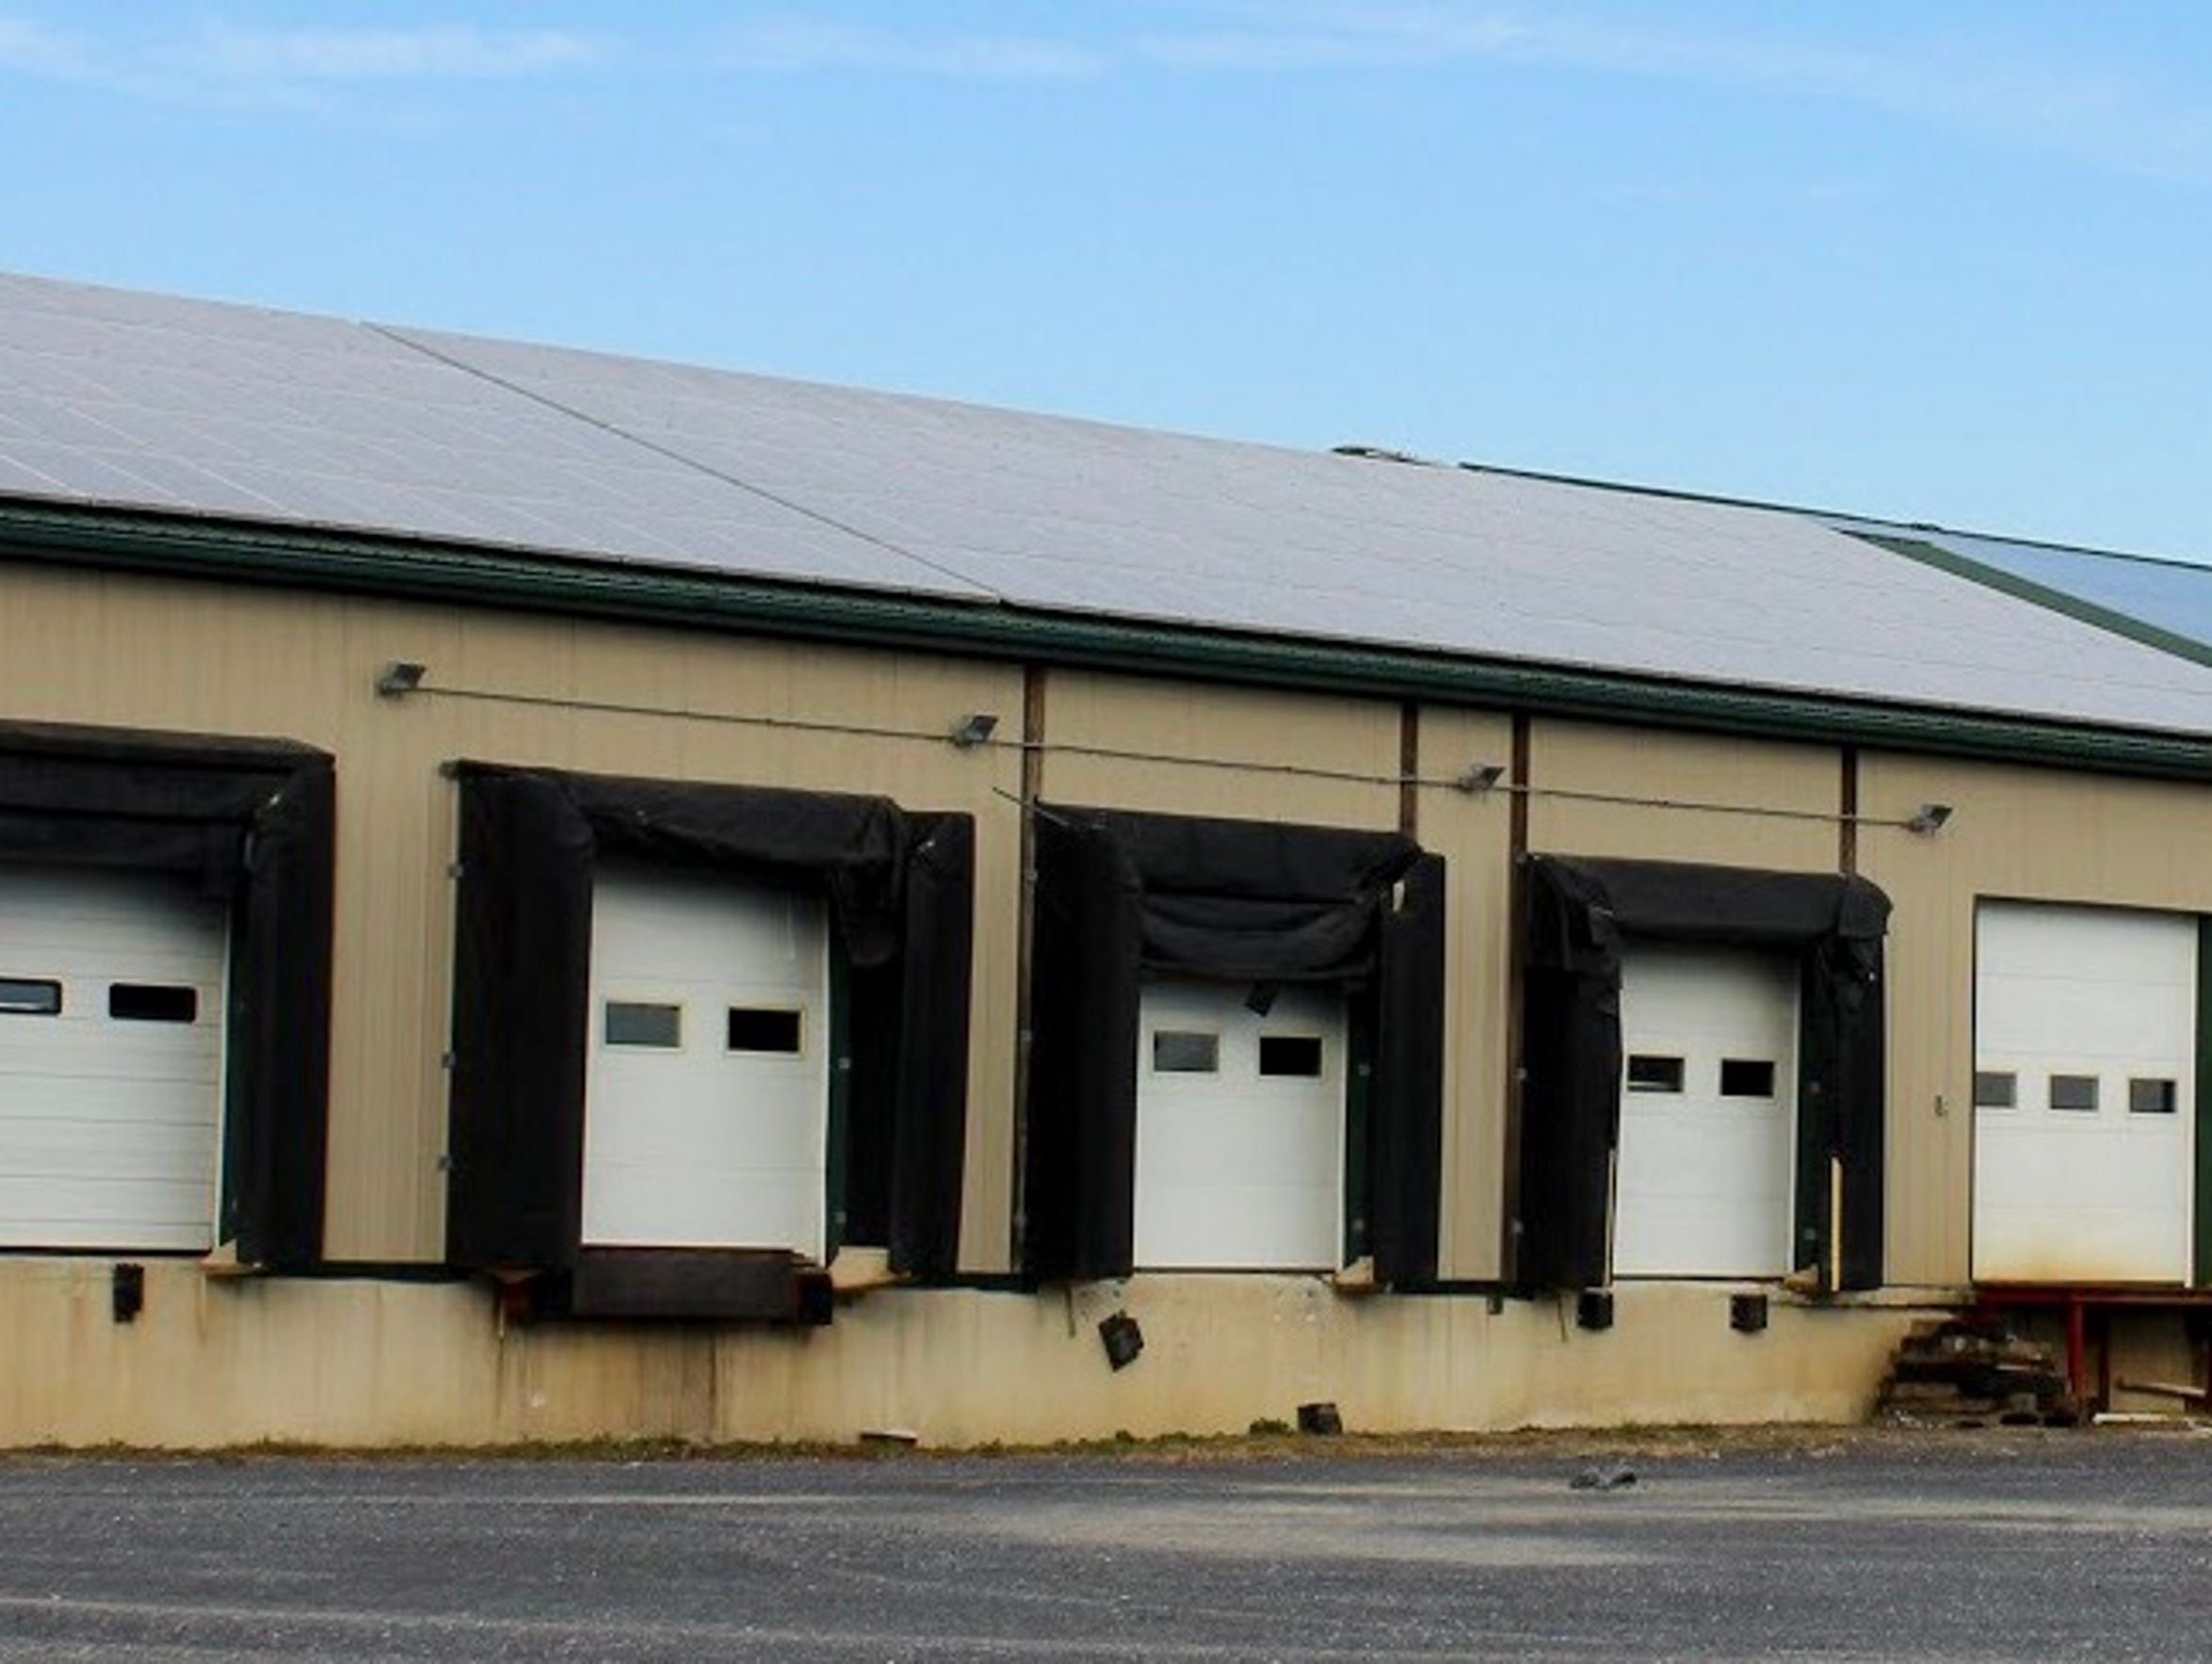 Lady Moon Farms installed solar panels on its Chambersburg